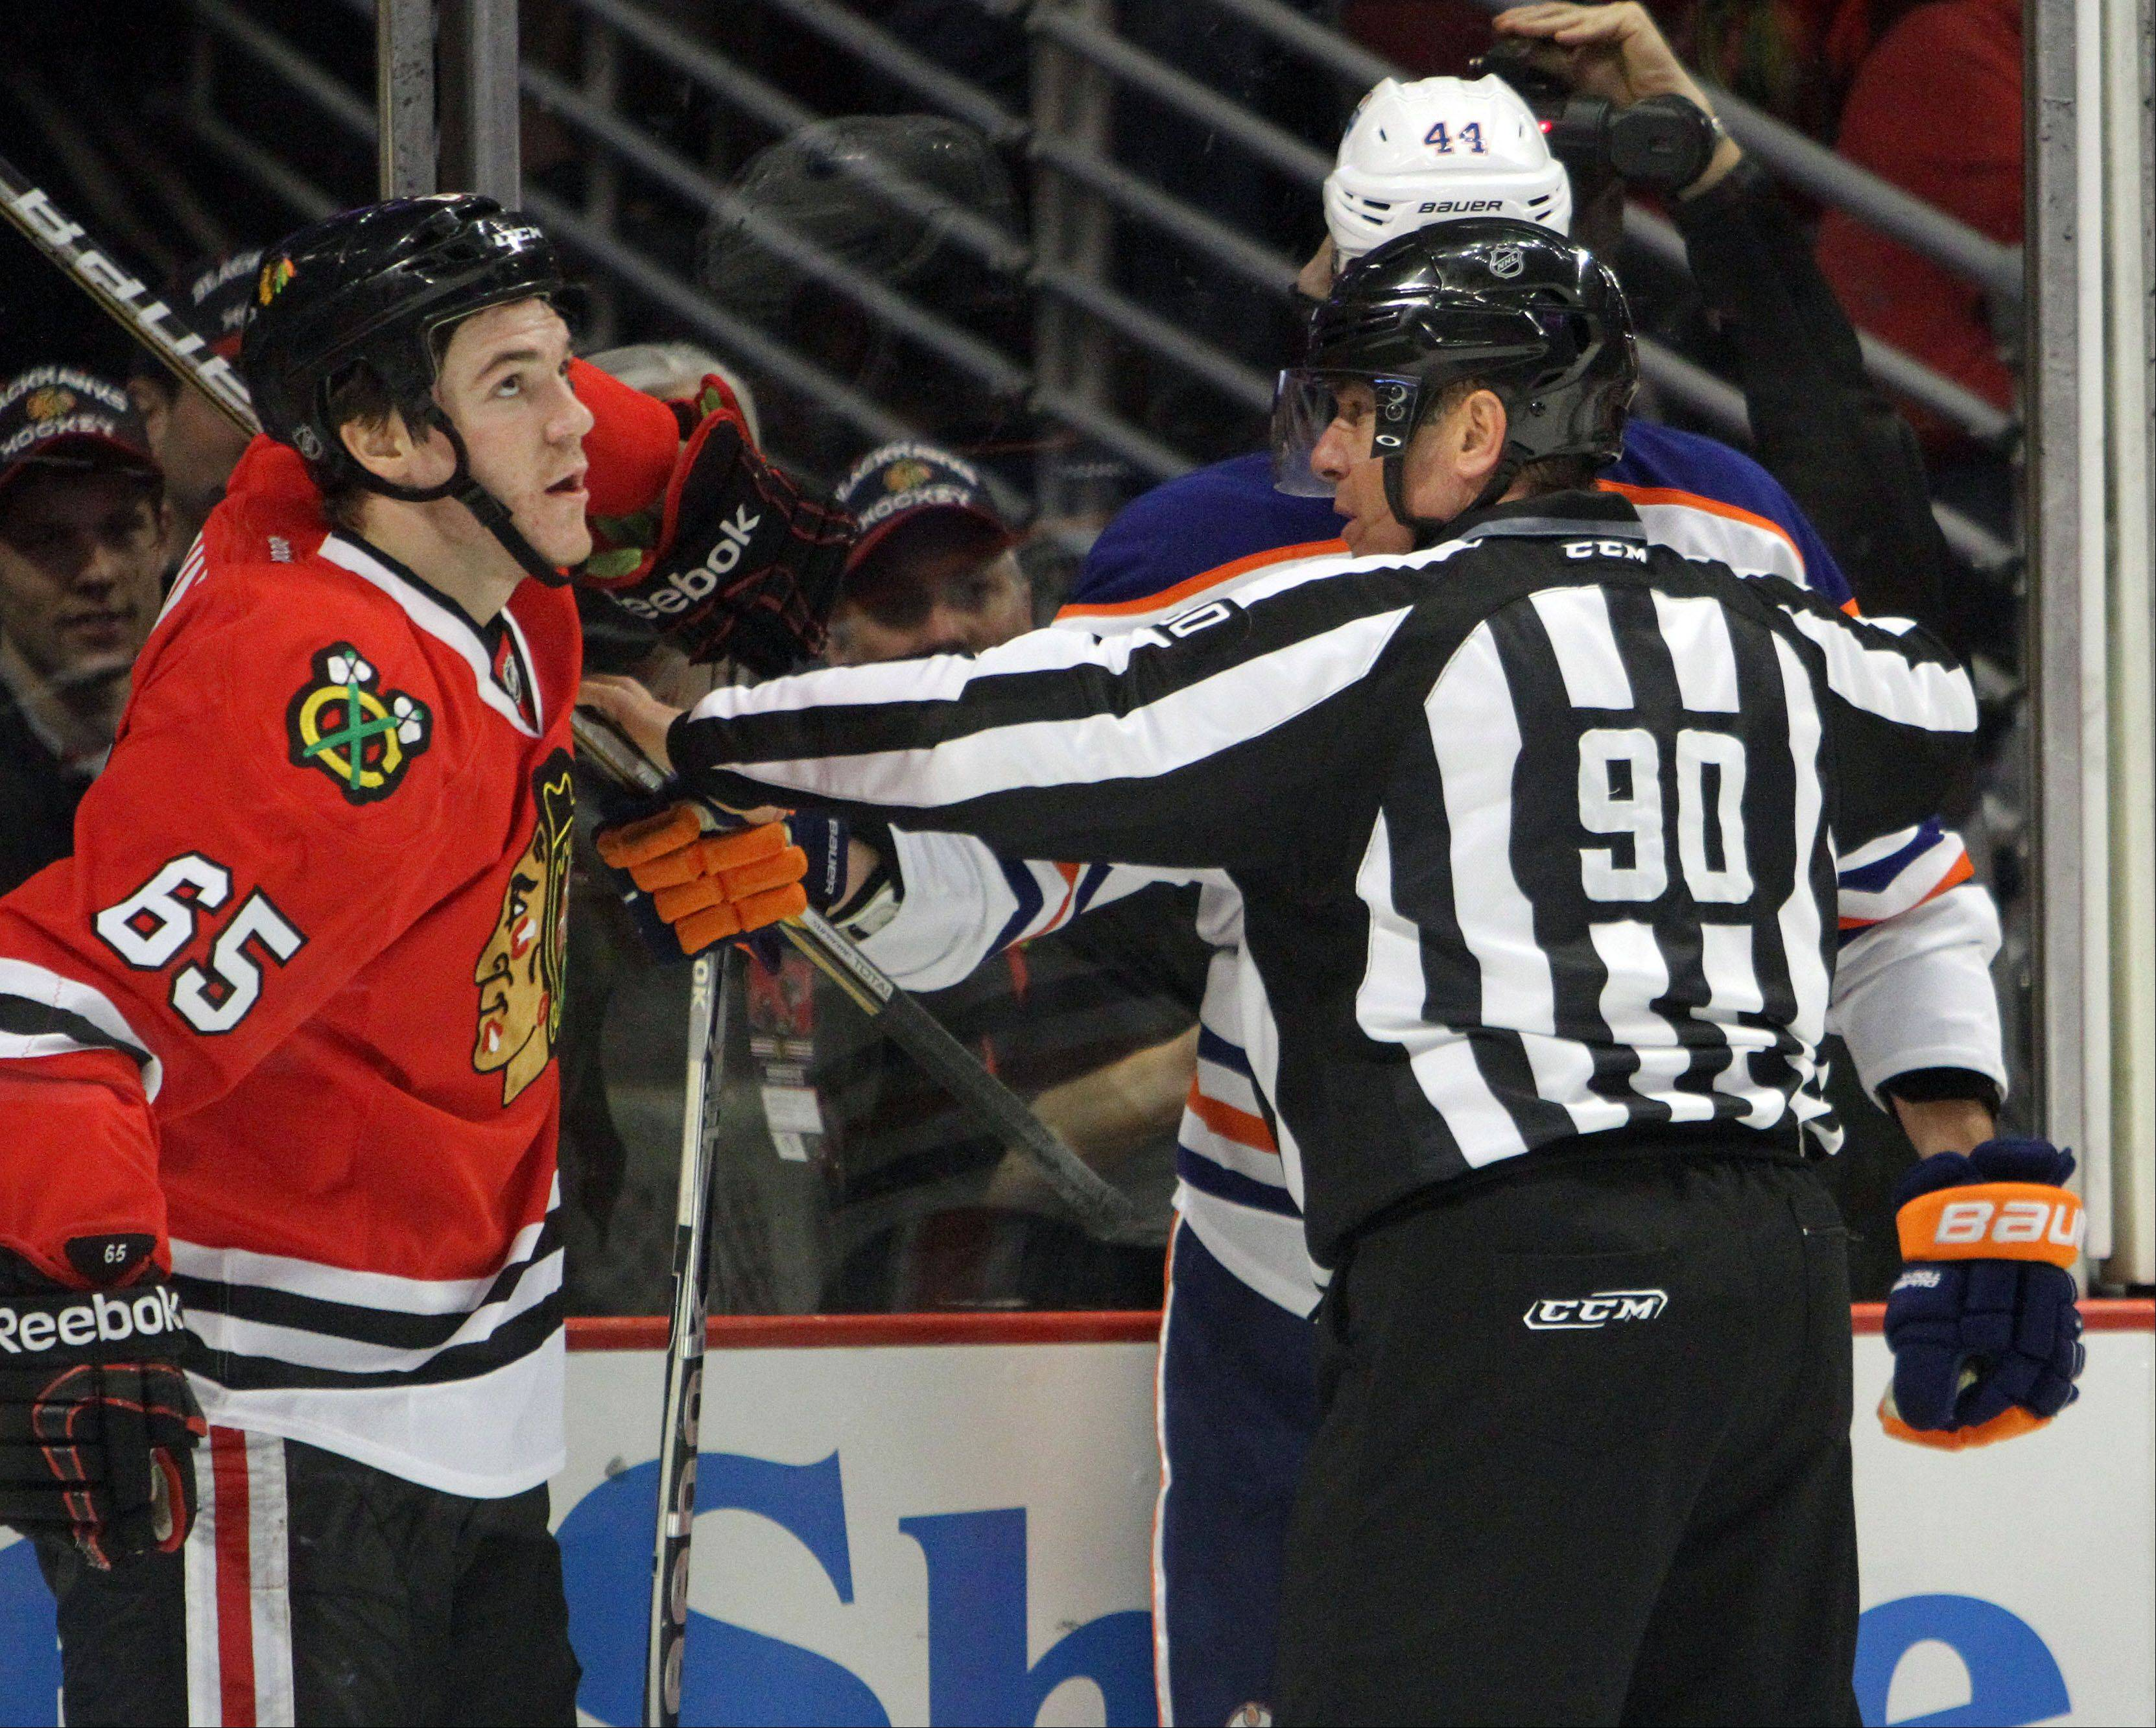 Steve Lundy/slundy@dailyherald.comNHL linesman Andy McElman breaks up a fight with Chicago Blackhawks center Andrew Shaw during their game against the Edmonton Oilers. McElman was hit in the face by a puck and suffered a serious injury. He's back working now. McElman is a native of Palatine.